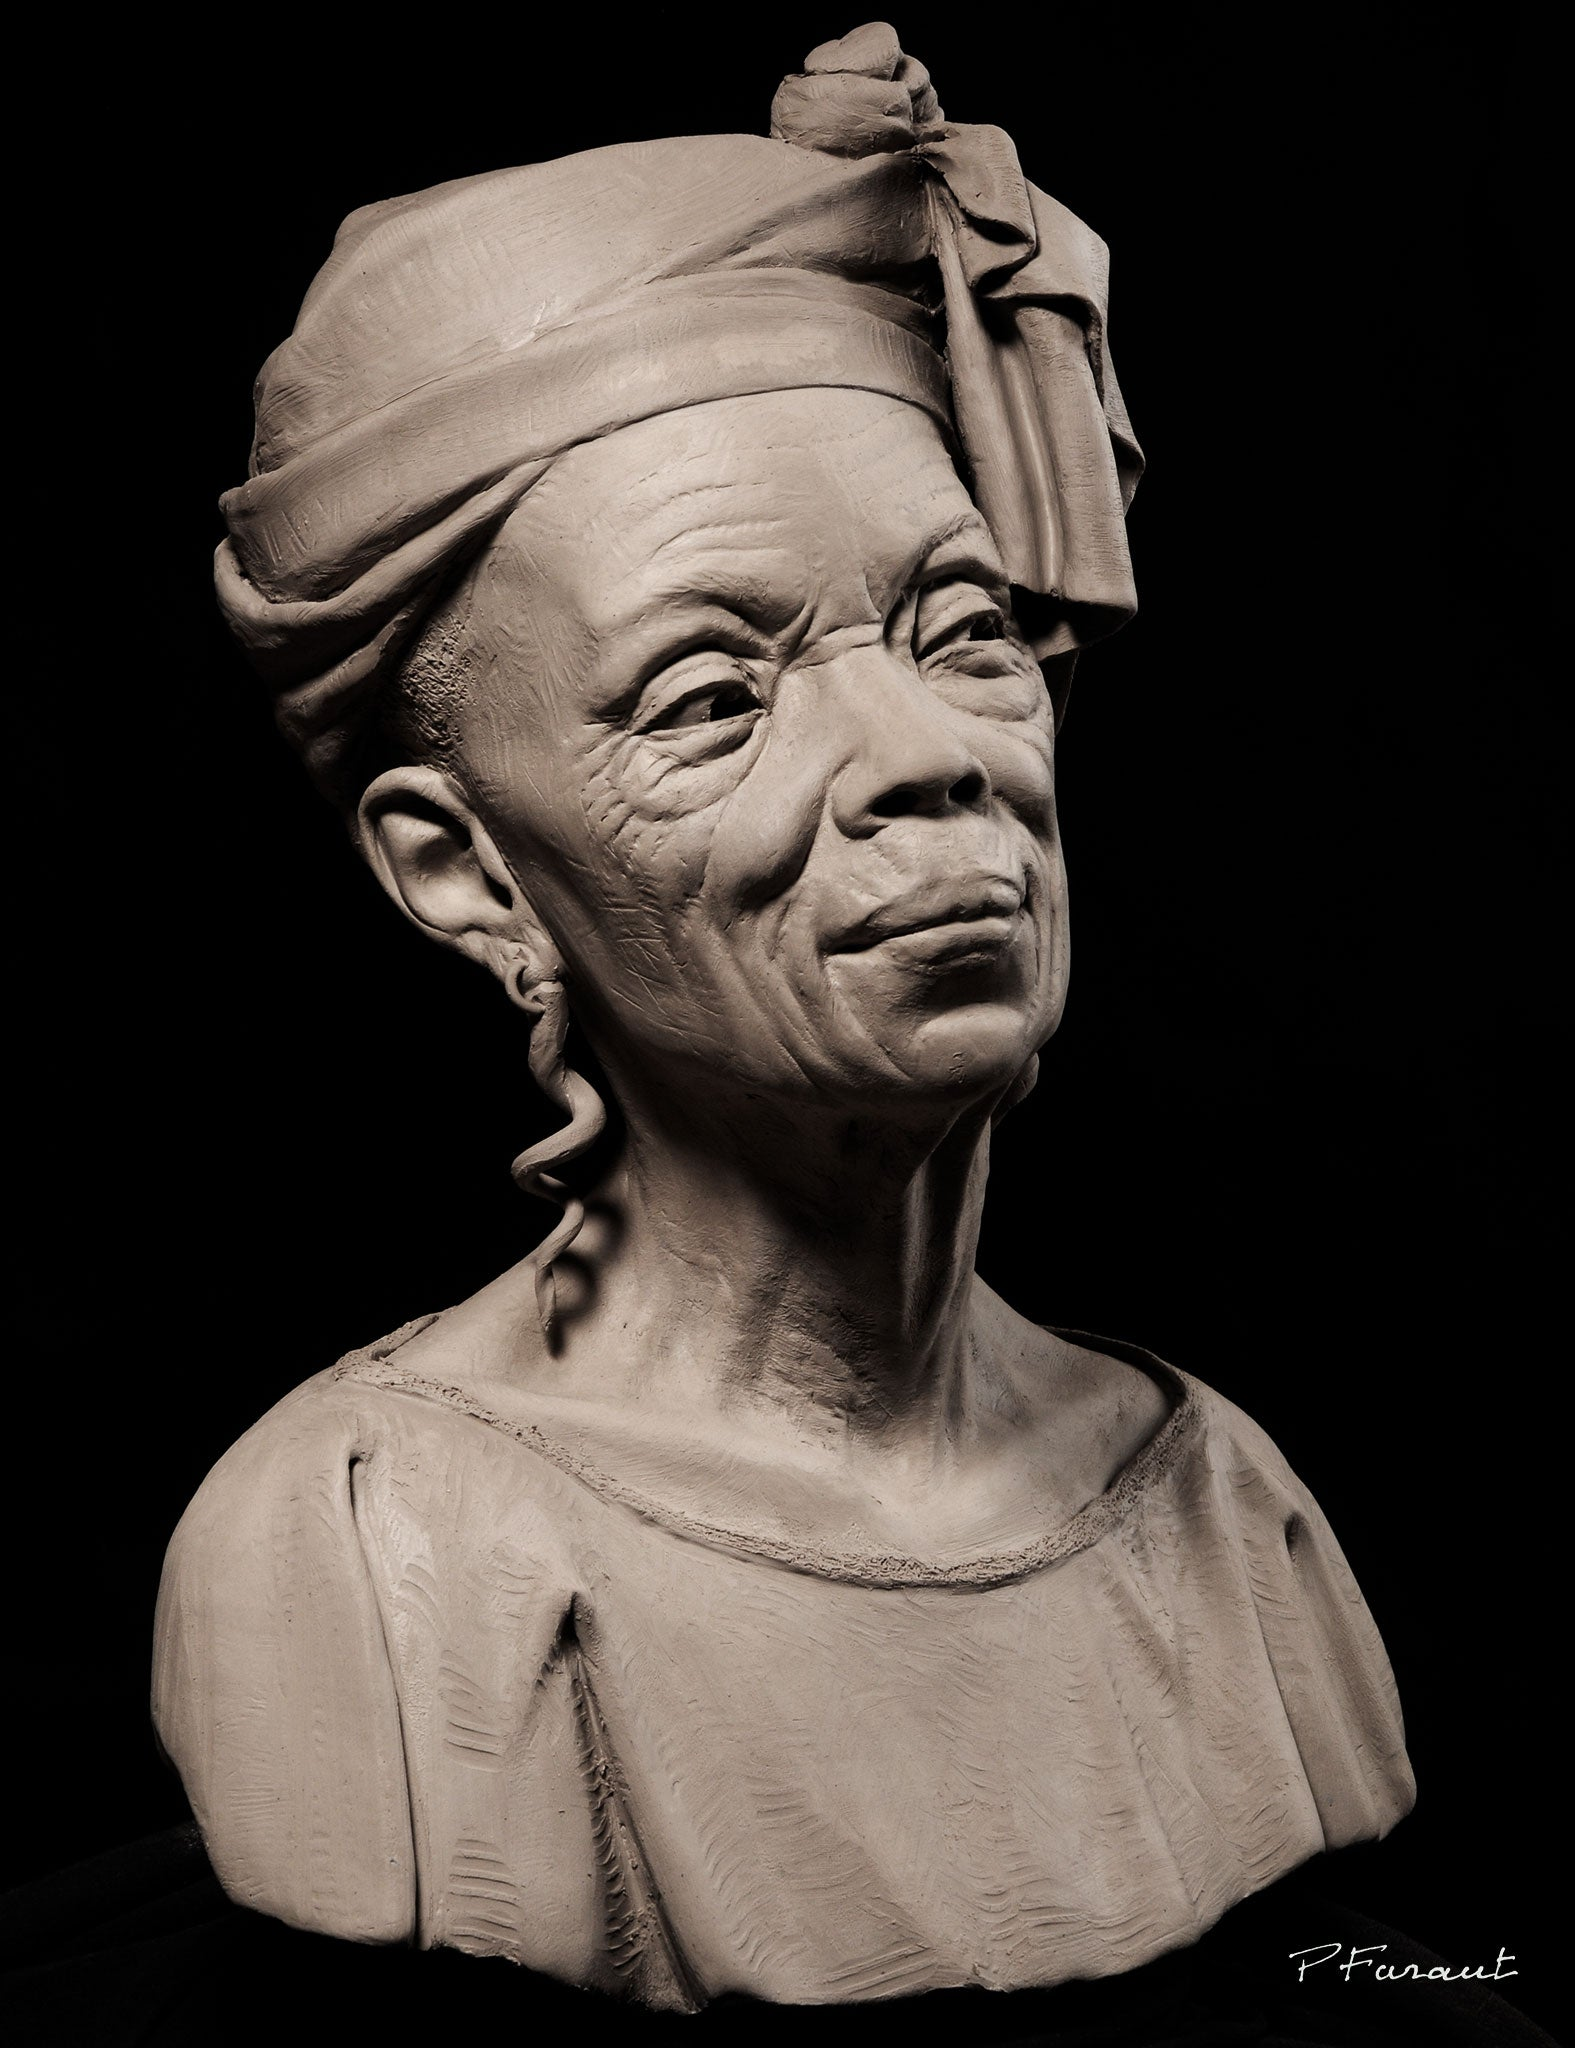 clay bust of elderly black woman dressed for church Sunday Morning by Philippe Faraut